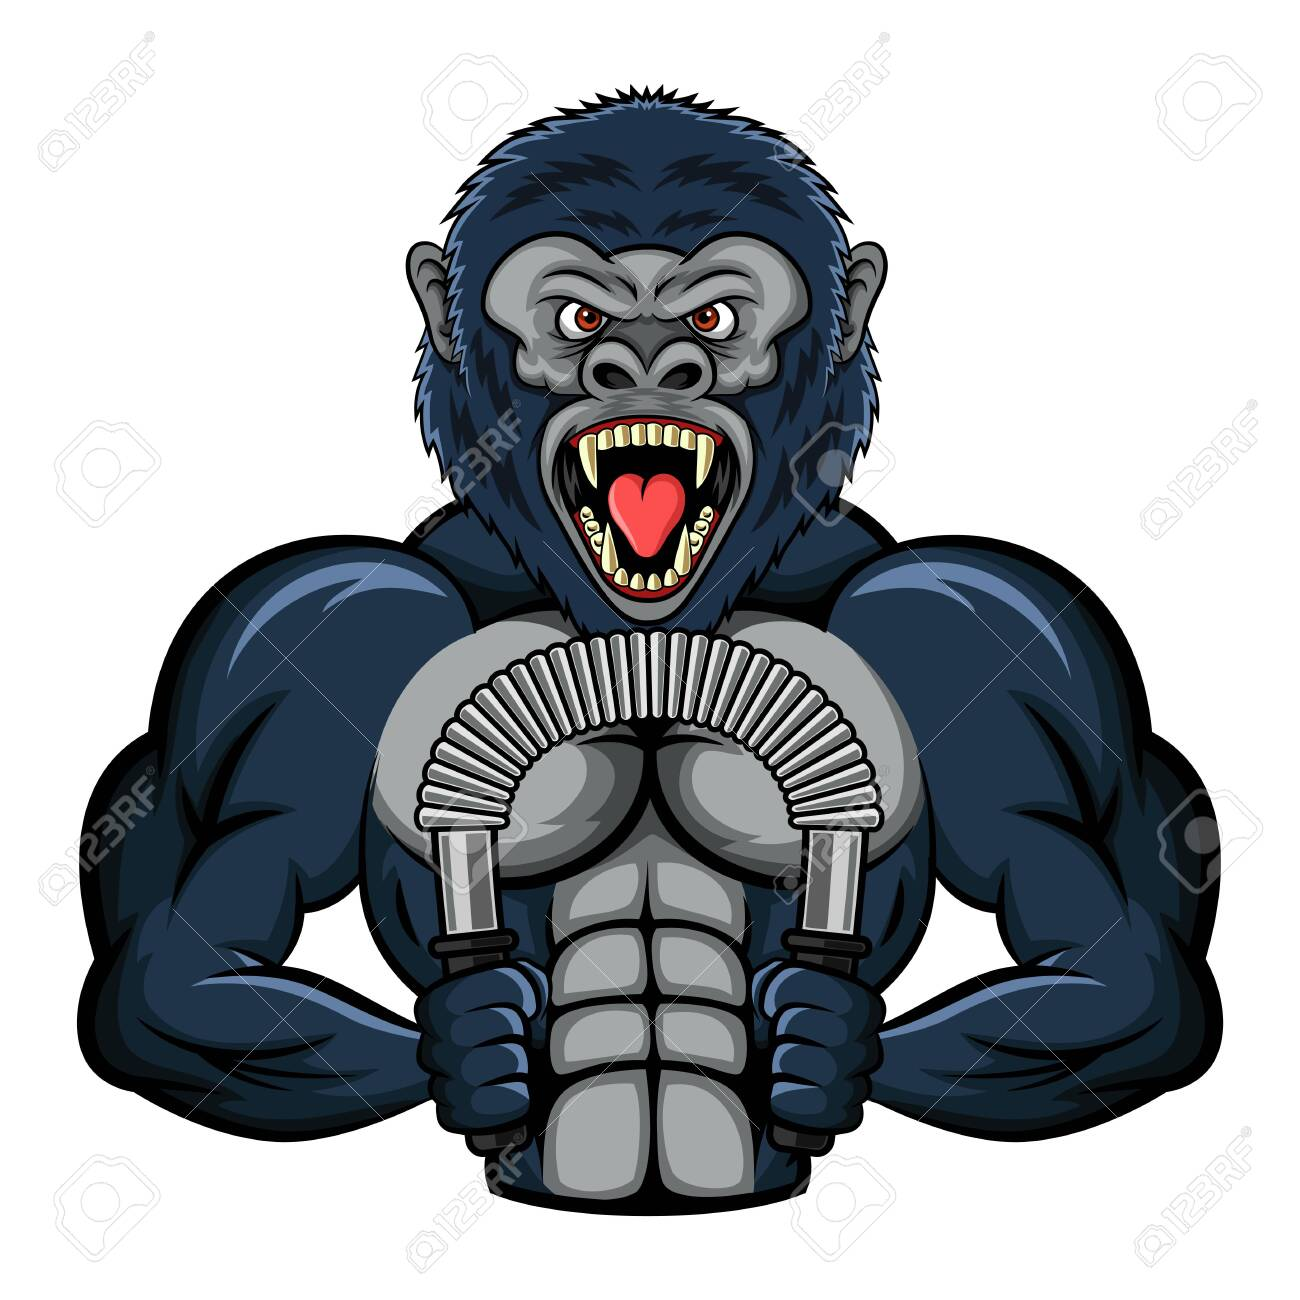 Mascot a strong gorilla performs an exercise with a power twister biceps. vector illustration - 139004810